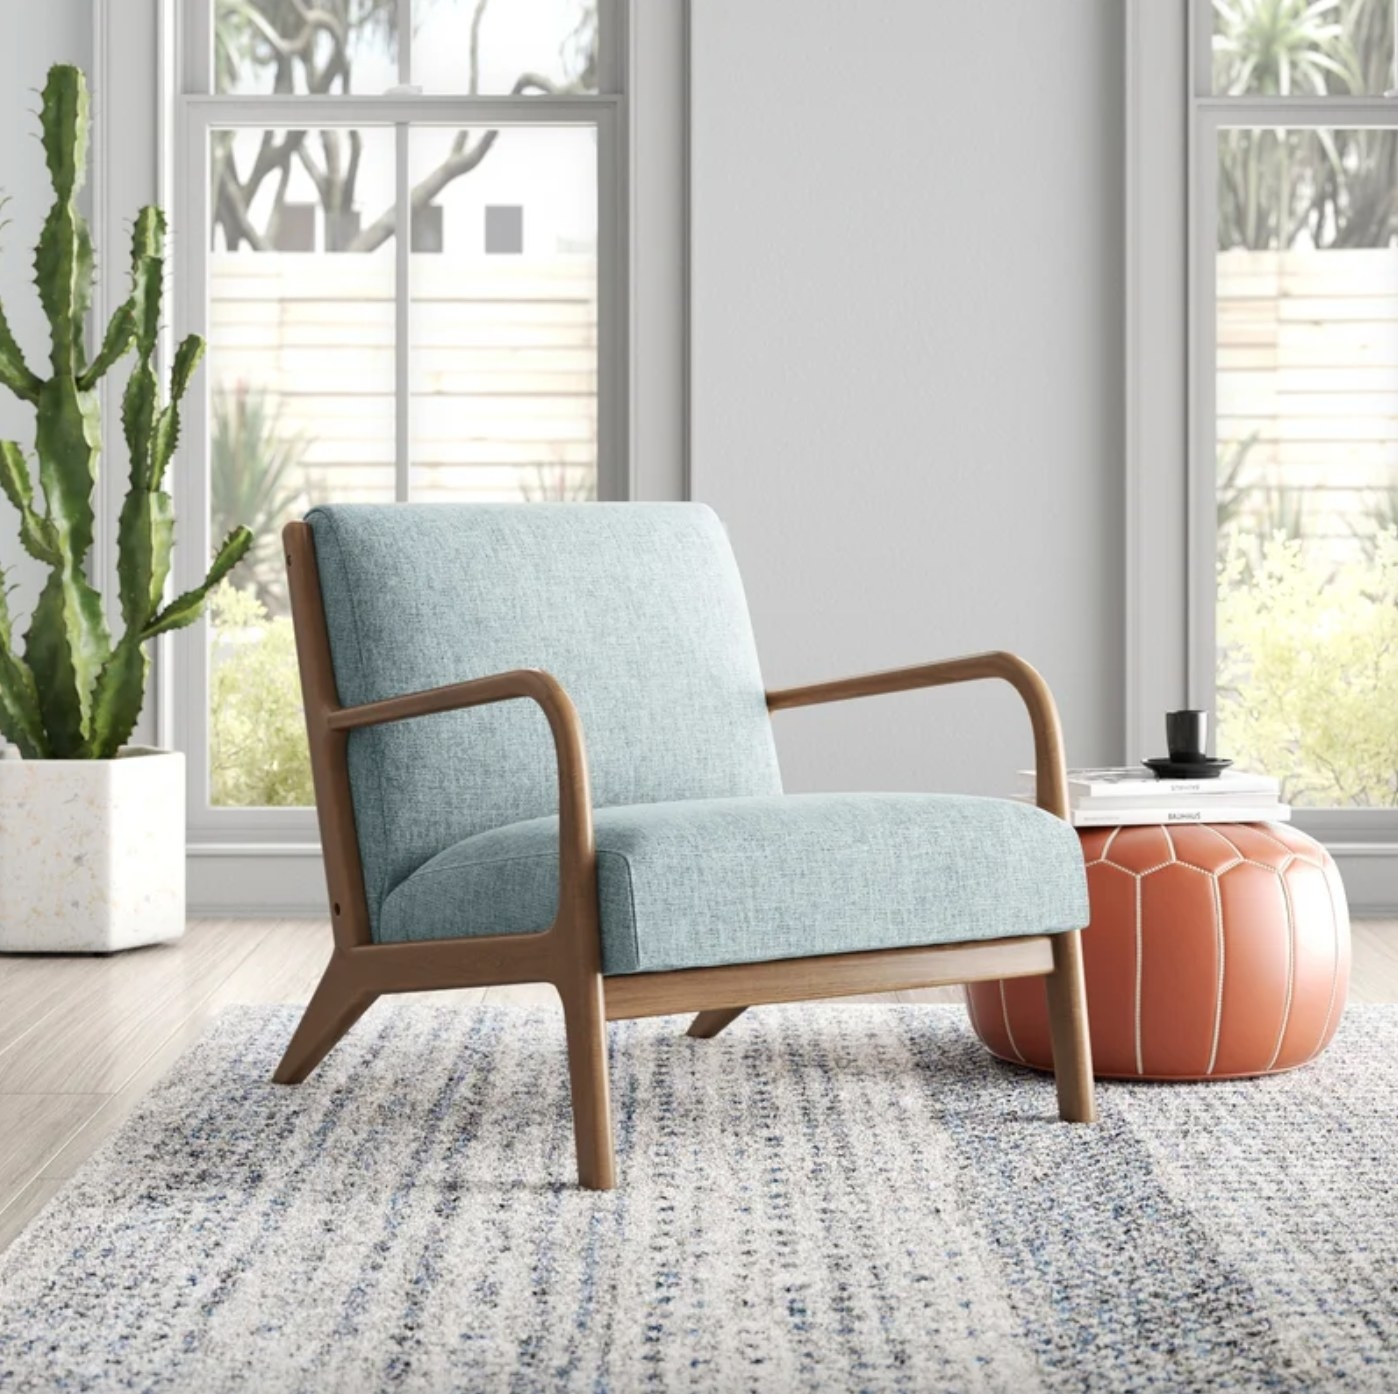 The chair in light blue next to a pouf with books on it